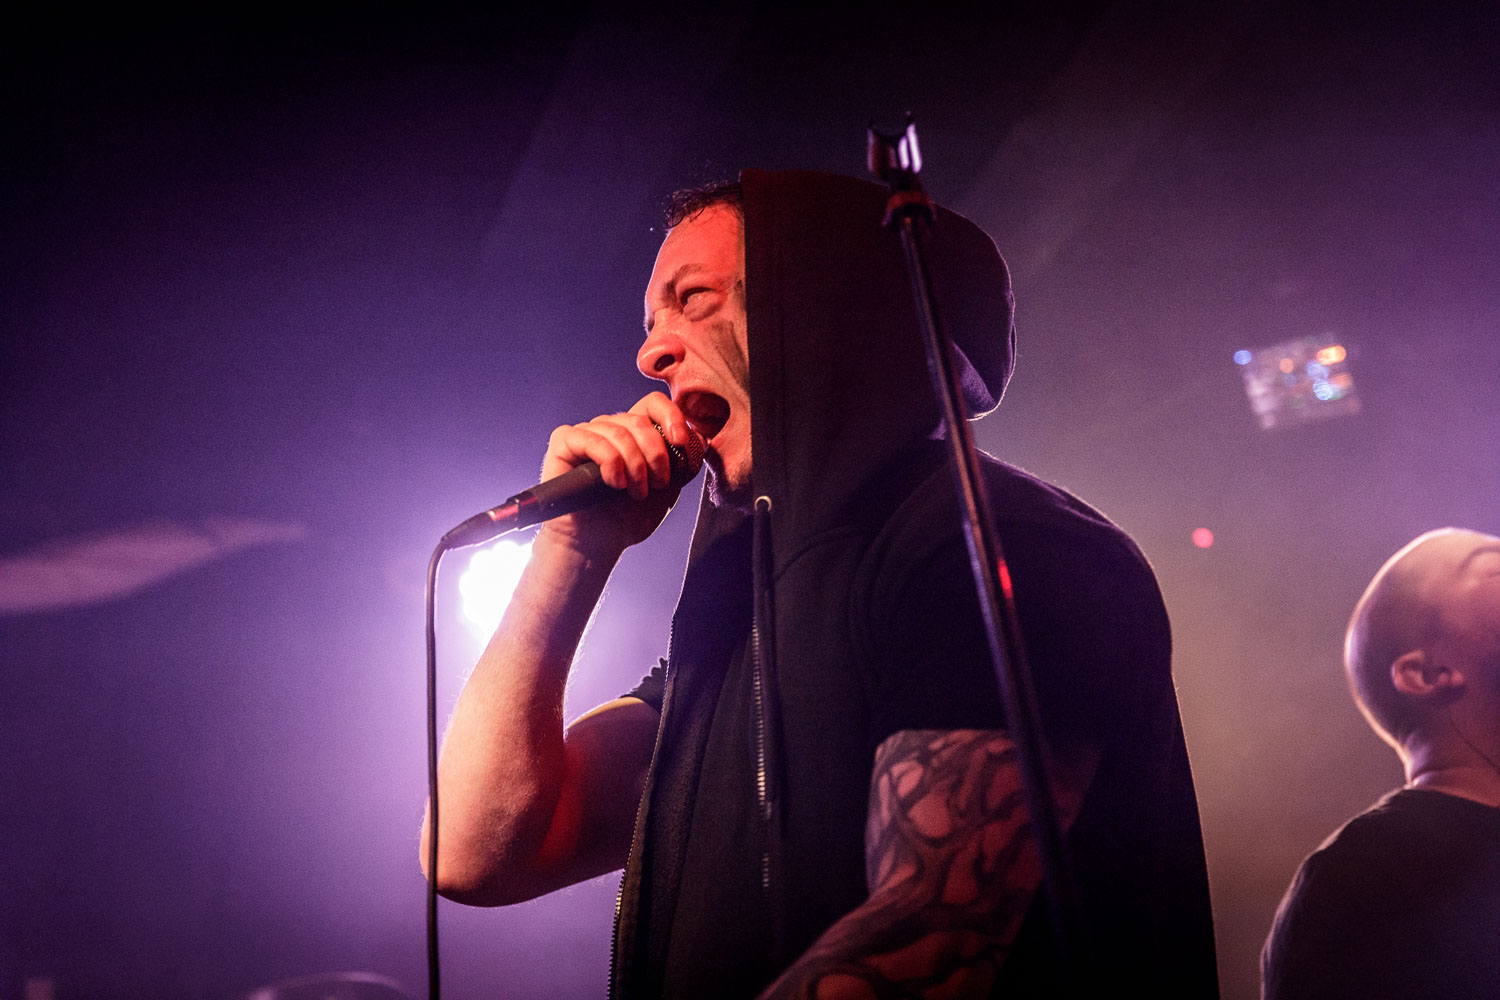 Voices at Rebellion in Manchester on April 26th 2019